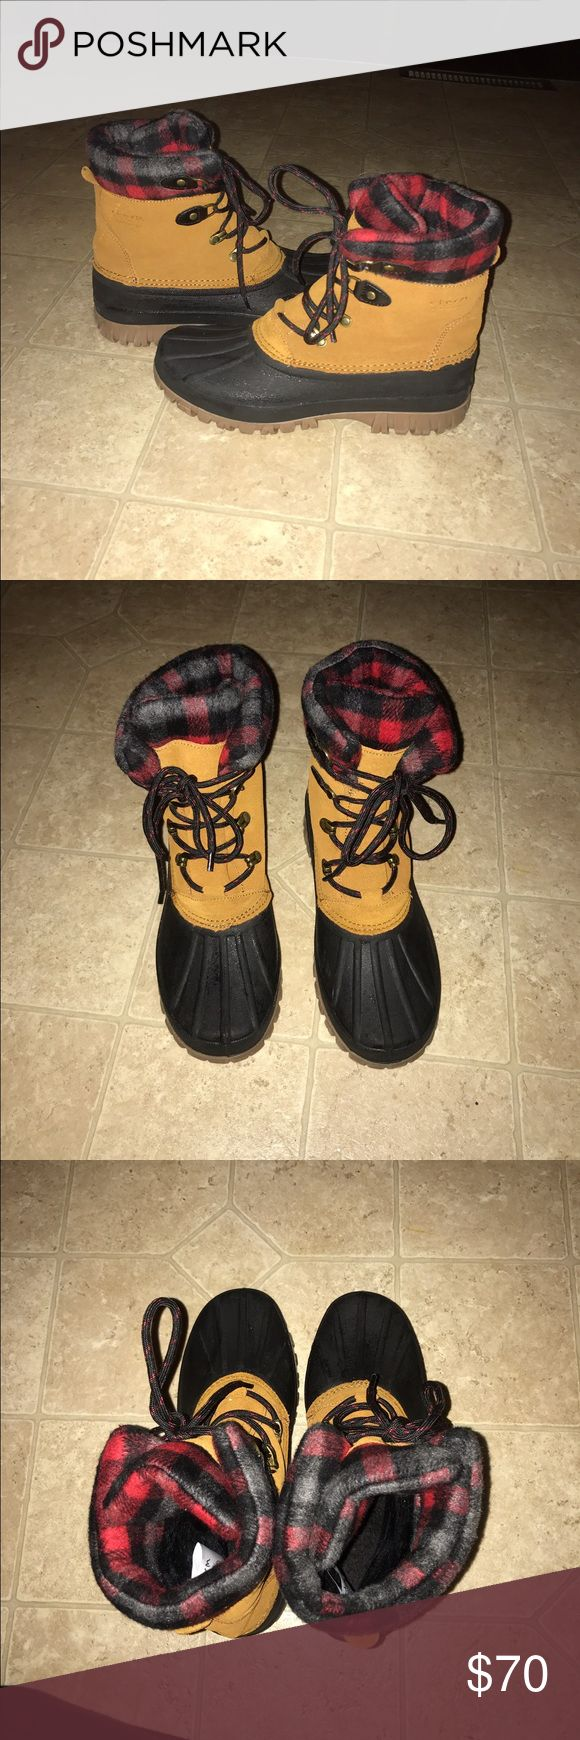 """Women's duck boots These are from target and the brand is """"storm by cougar."""" They look wet only because I was wiping them off before taking the picture. These are size 8. I only wore them twice (no signs of wear) but they're too big on me. Retail $89 Target Shoes Winter & Rain Boots"""